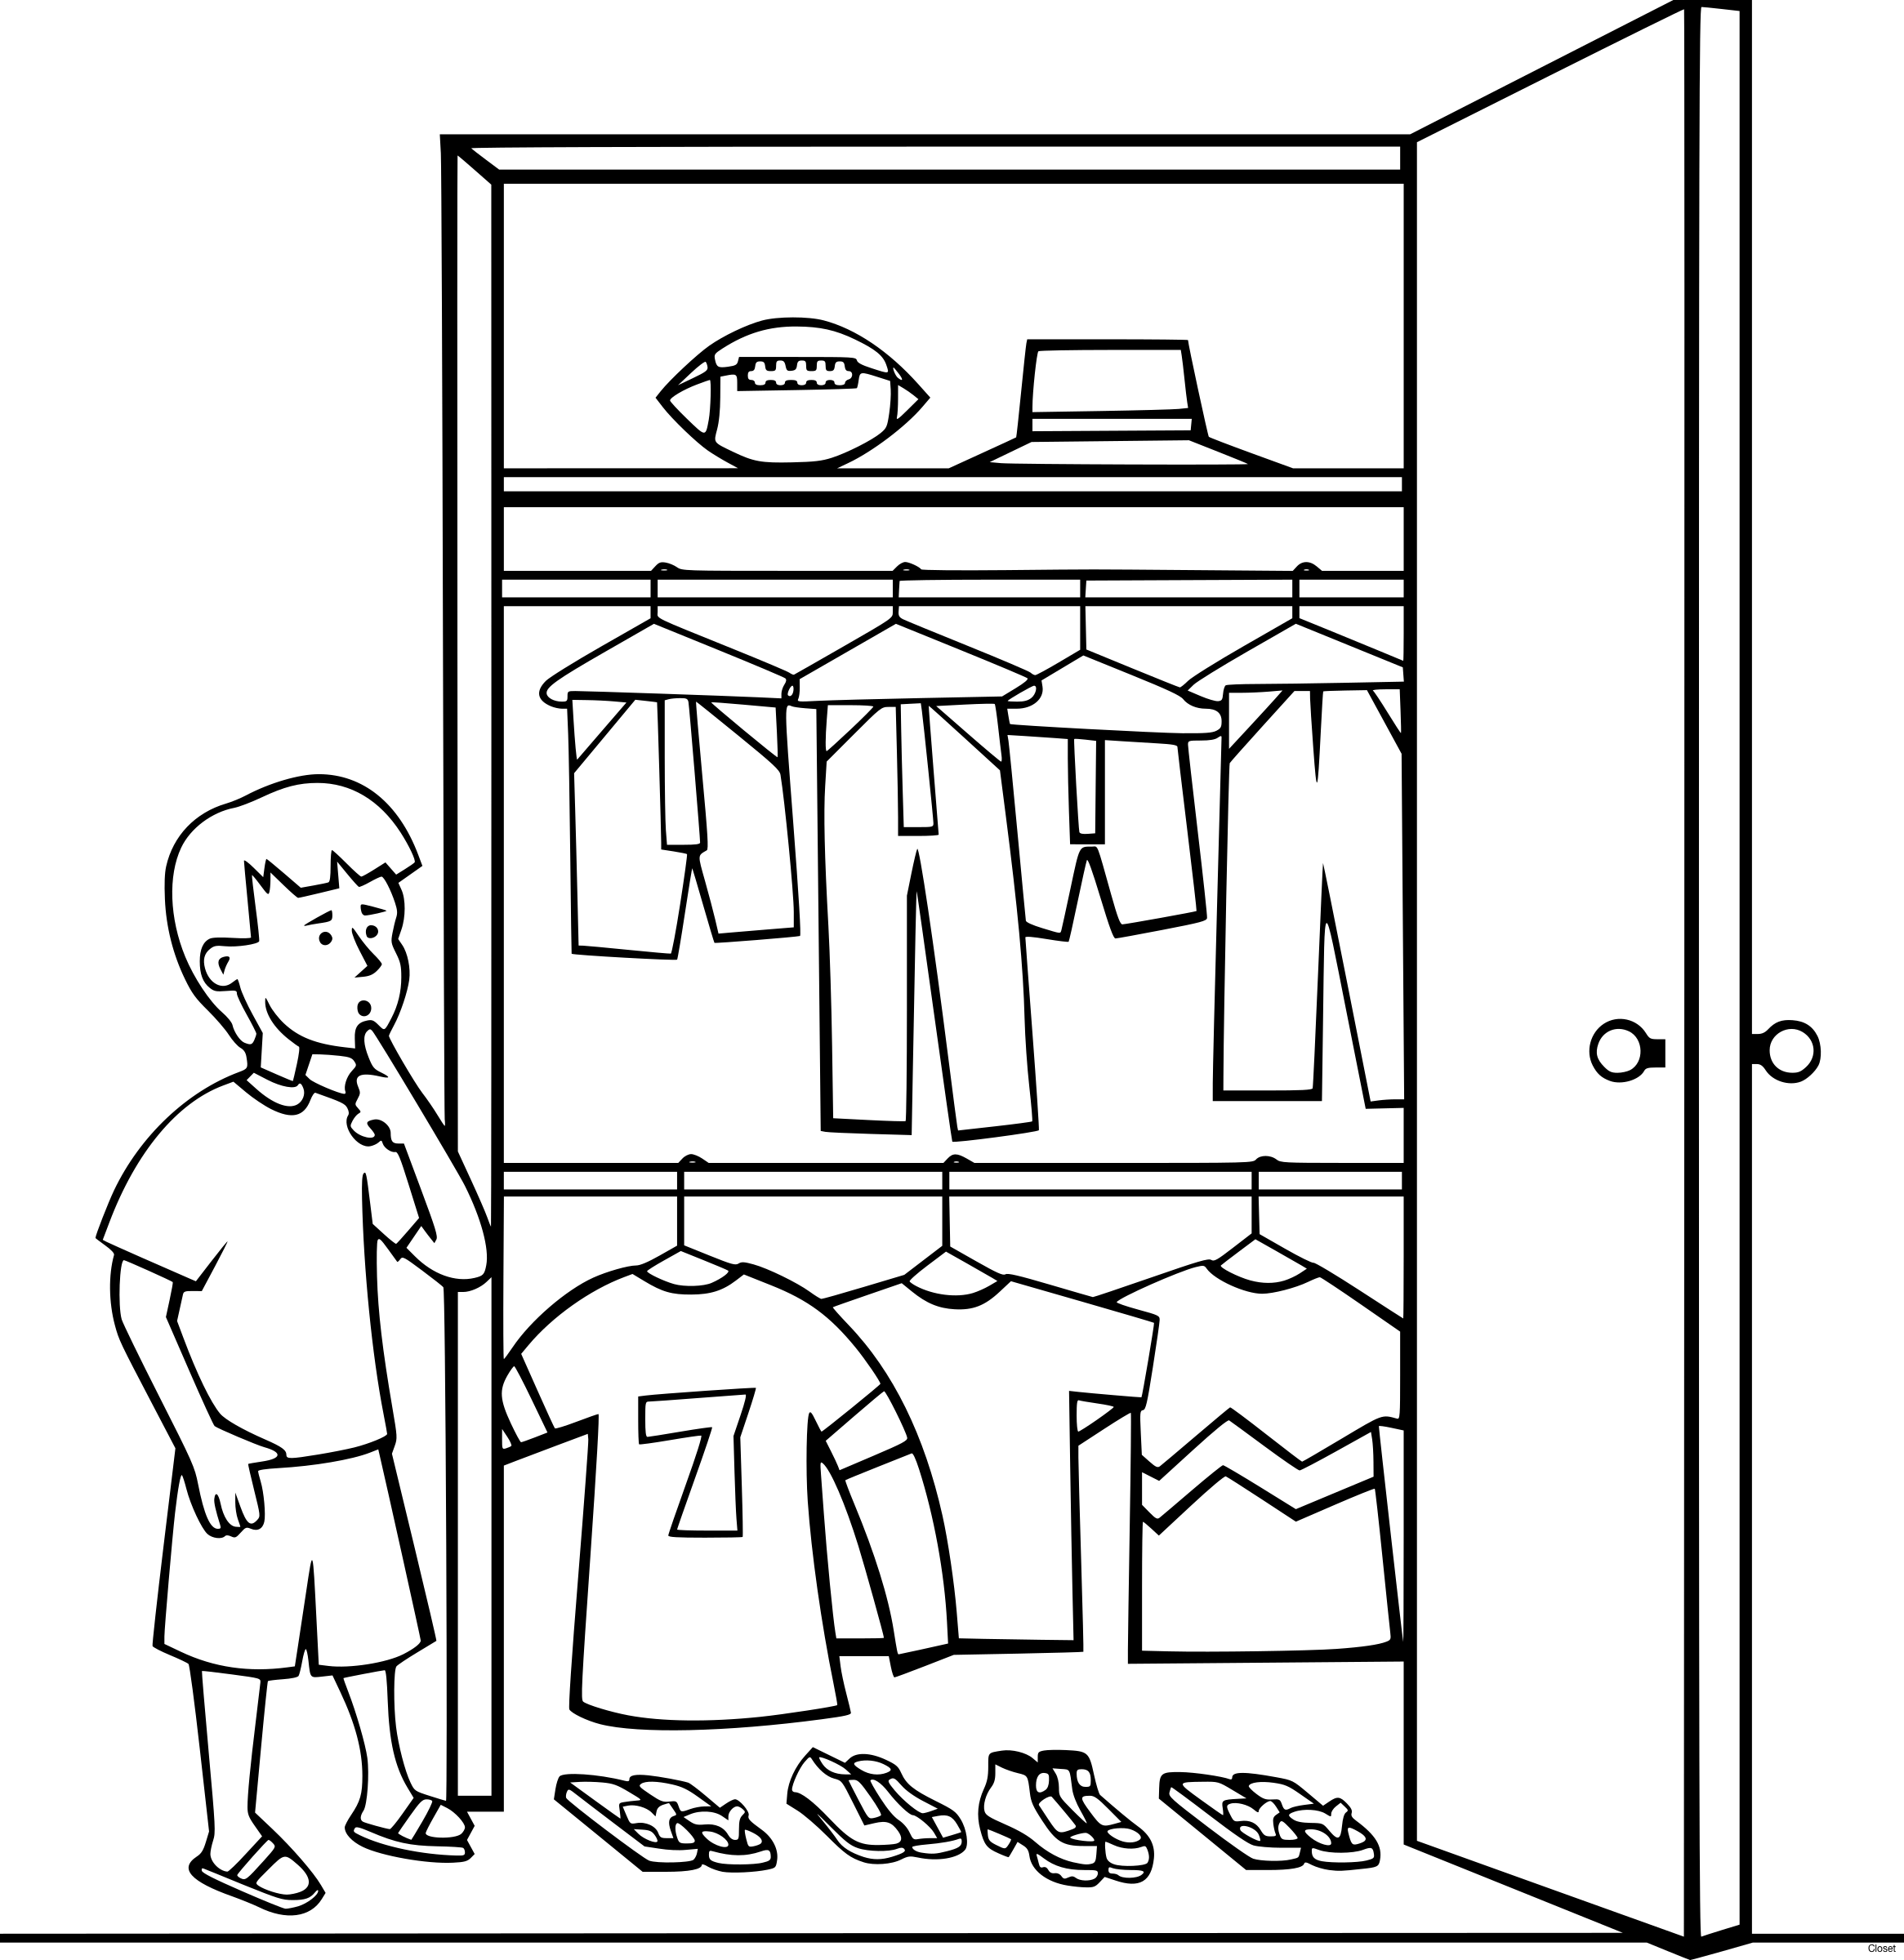 Door clipart black and white. Closet absolutely ideas clip